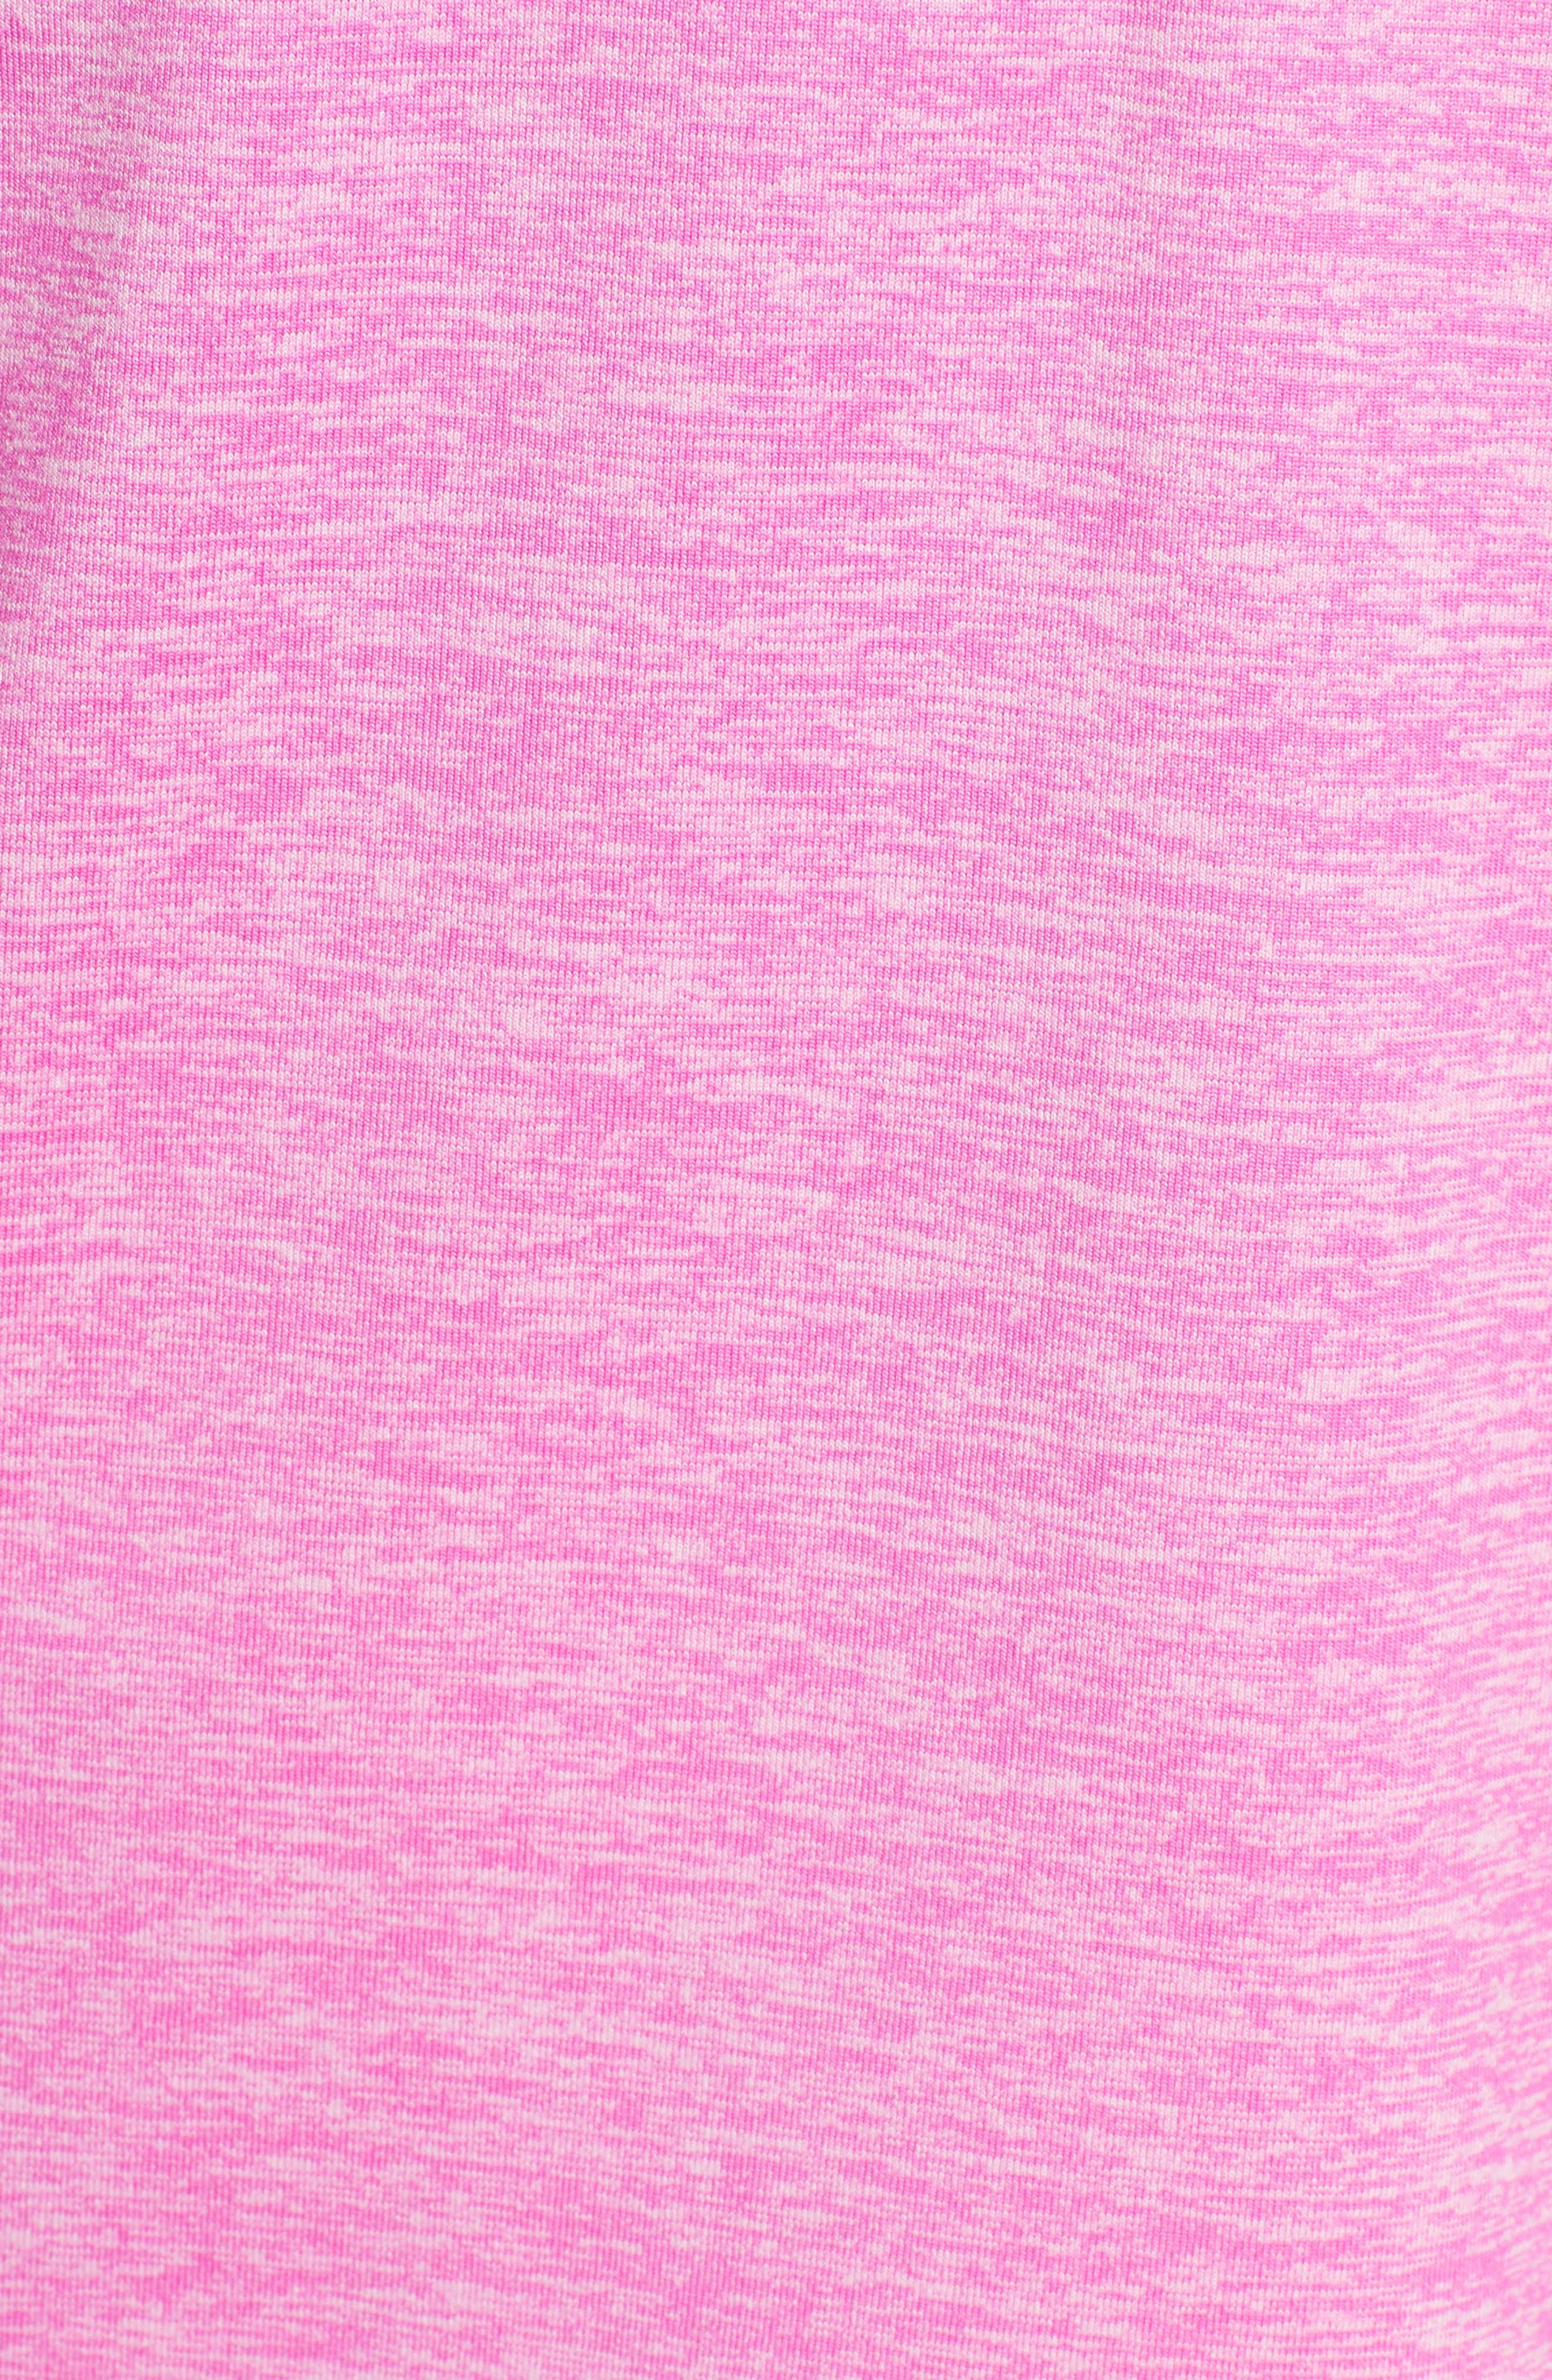 NIKE, Element Long-Sleeve Running Top, Alternate thumbnail 6, color, ACTIVE FUCHSIA/ PINK RISE